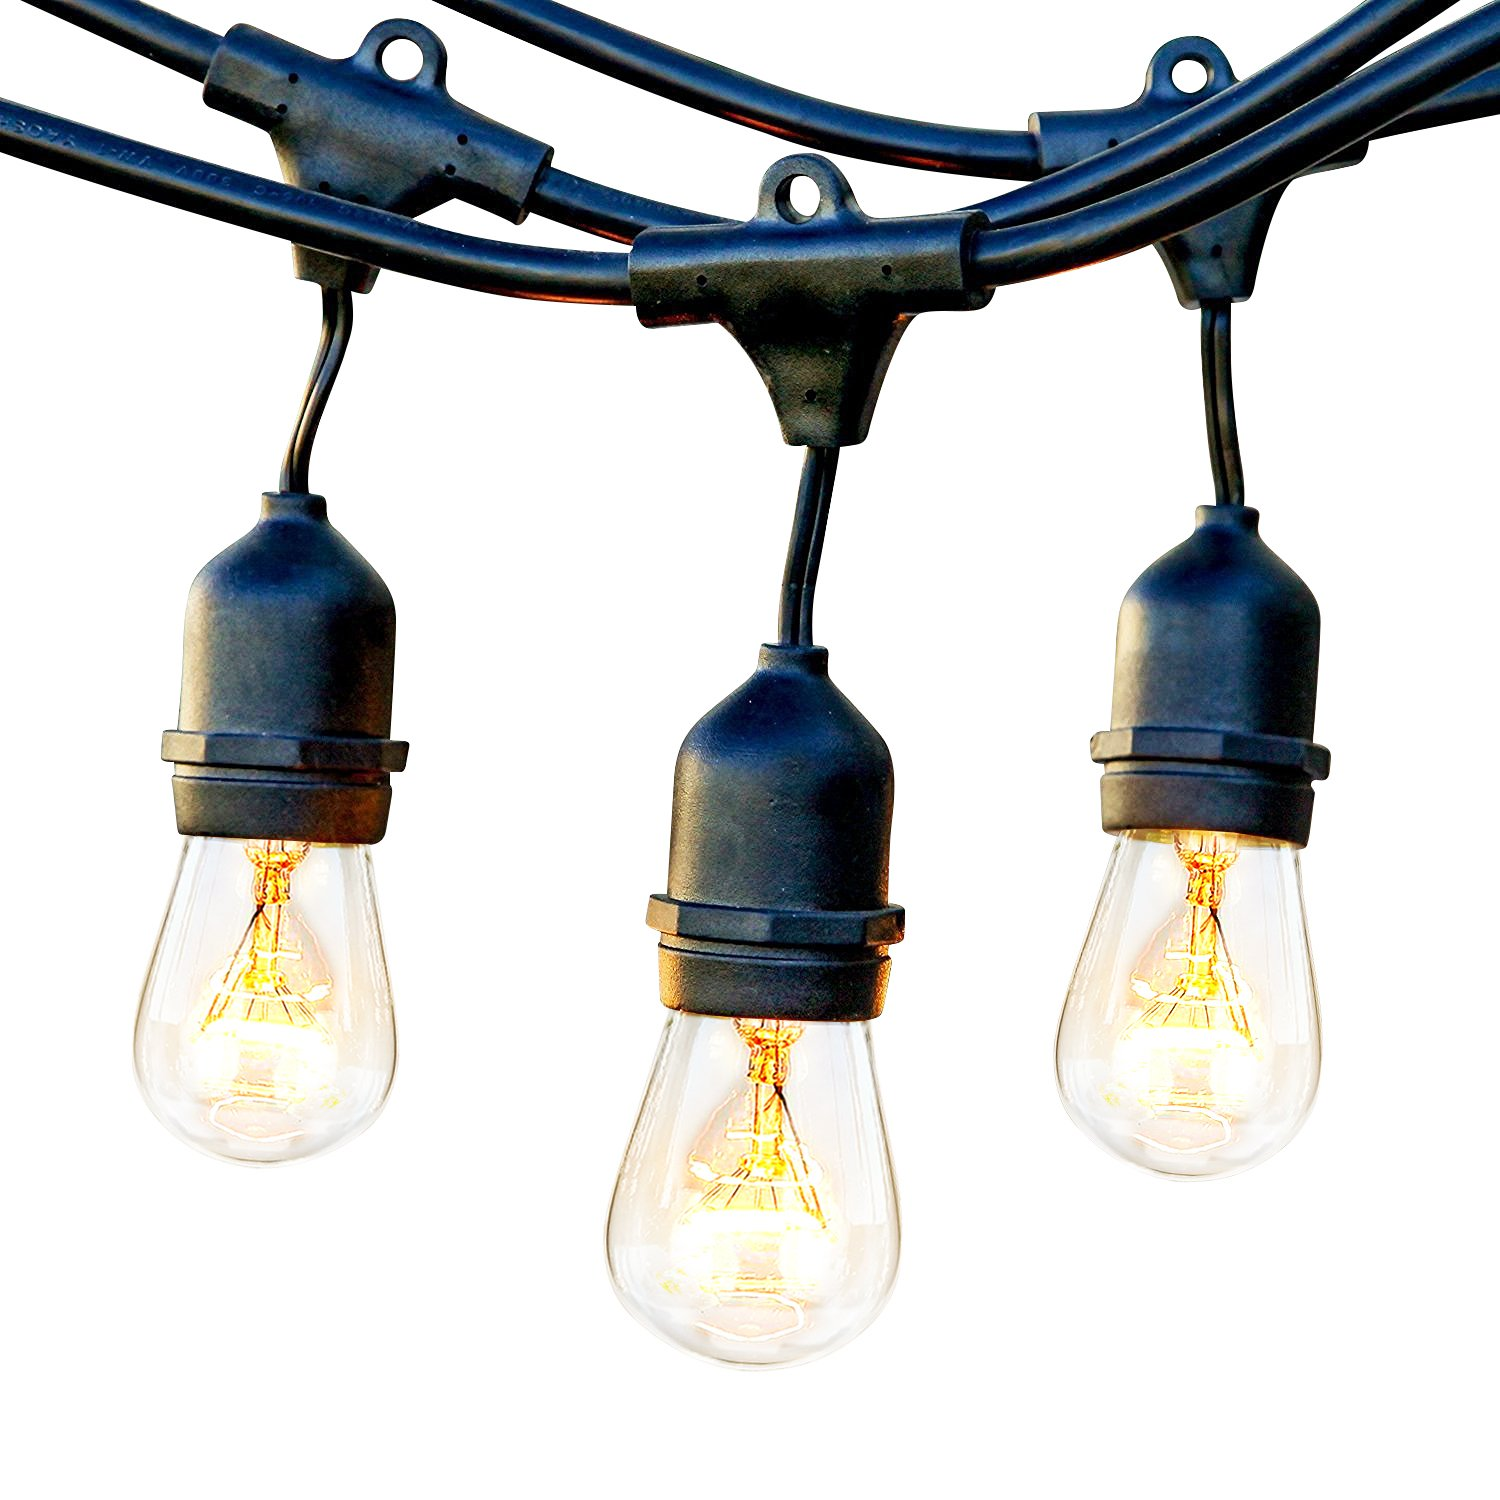 Brightech Ambience Pro Waterproof Outdoor String Lights Vintage Hanging Edison Bulbs: 48 Ft Commercial Grade Patio/Gazebo Lights - Great Cafe/Bistro Ambience in Your Garden – Black by Brightech